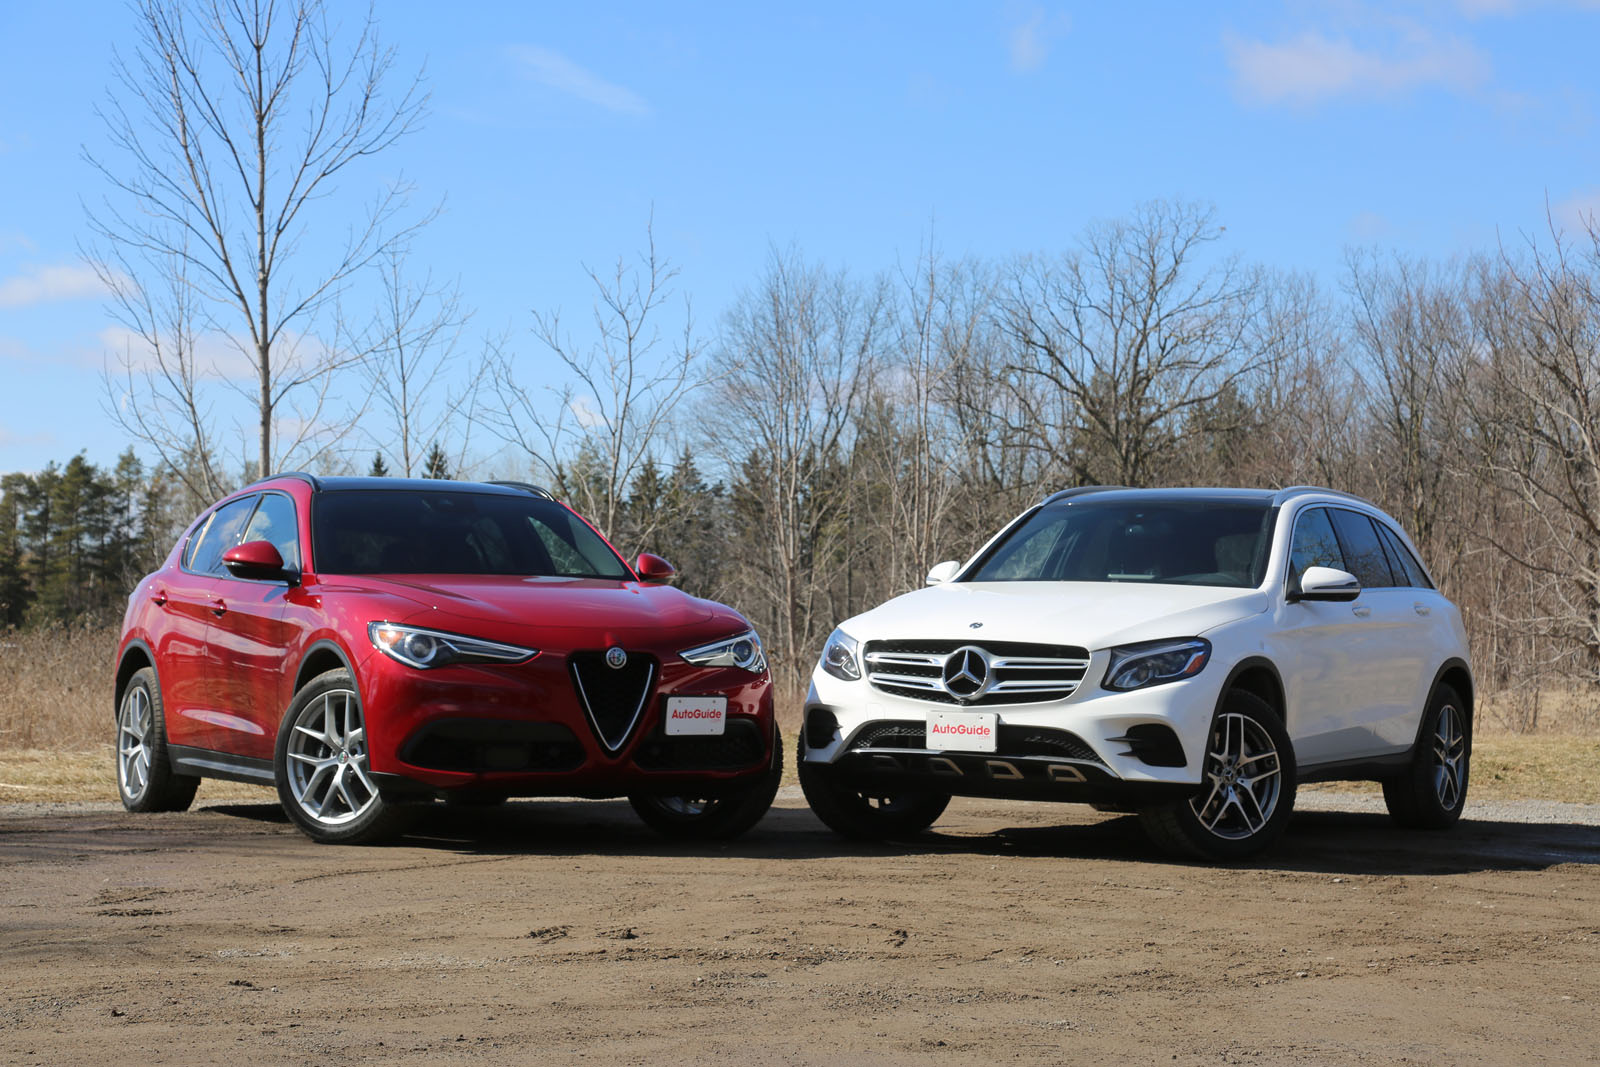 2018 Alfa Romeo Stelvio Vs Mercedes Benz Glc Comparison Autoguide Com